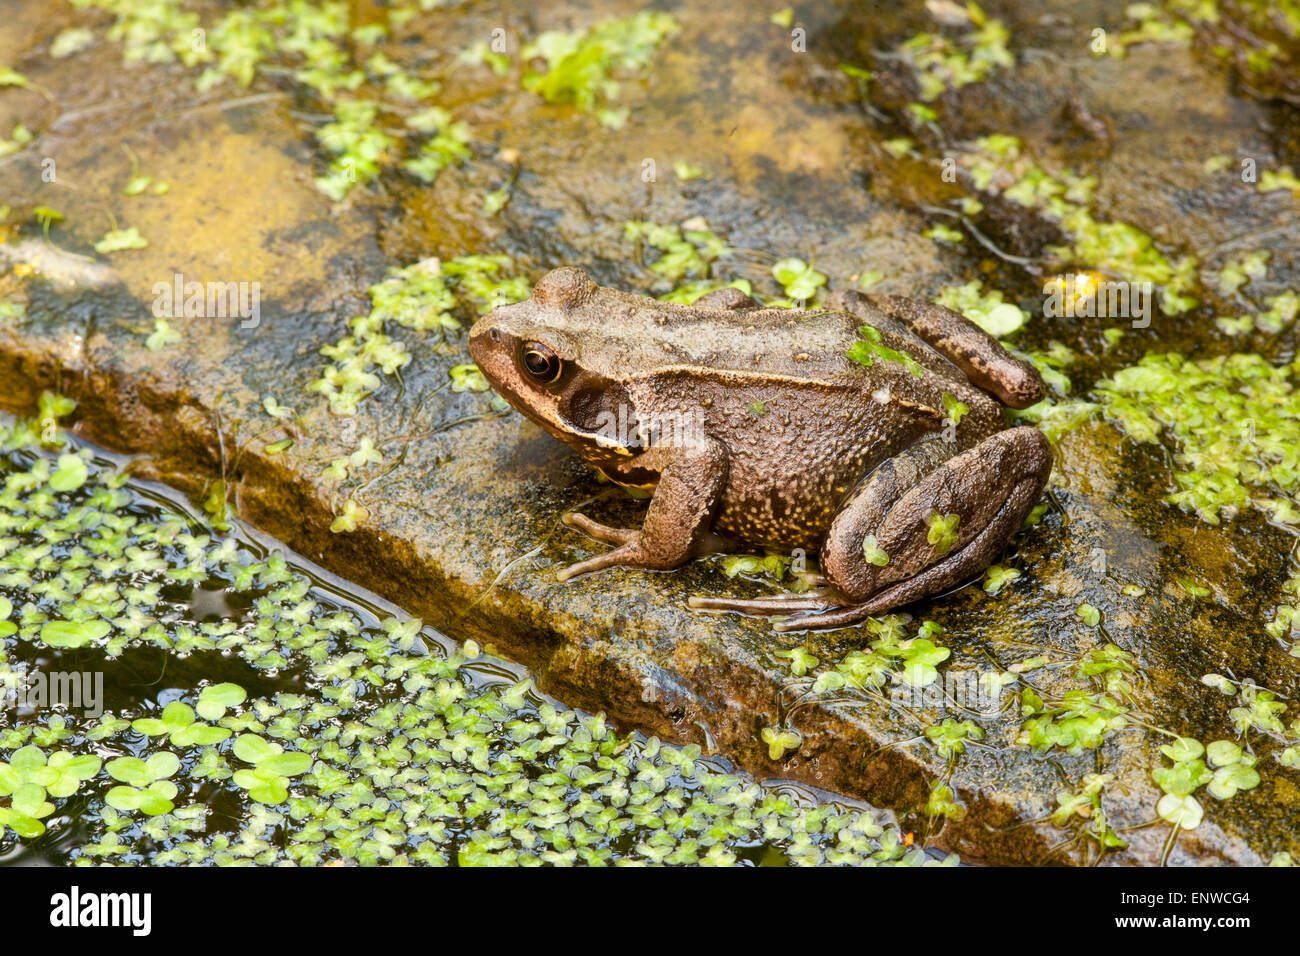 Common frog, Rana temporaria, at the edge of a garden pond, Sheffield, South Yorkshire - Stock Image